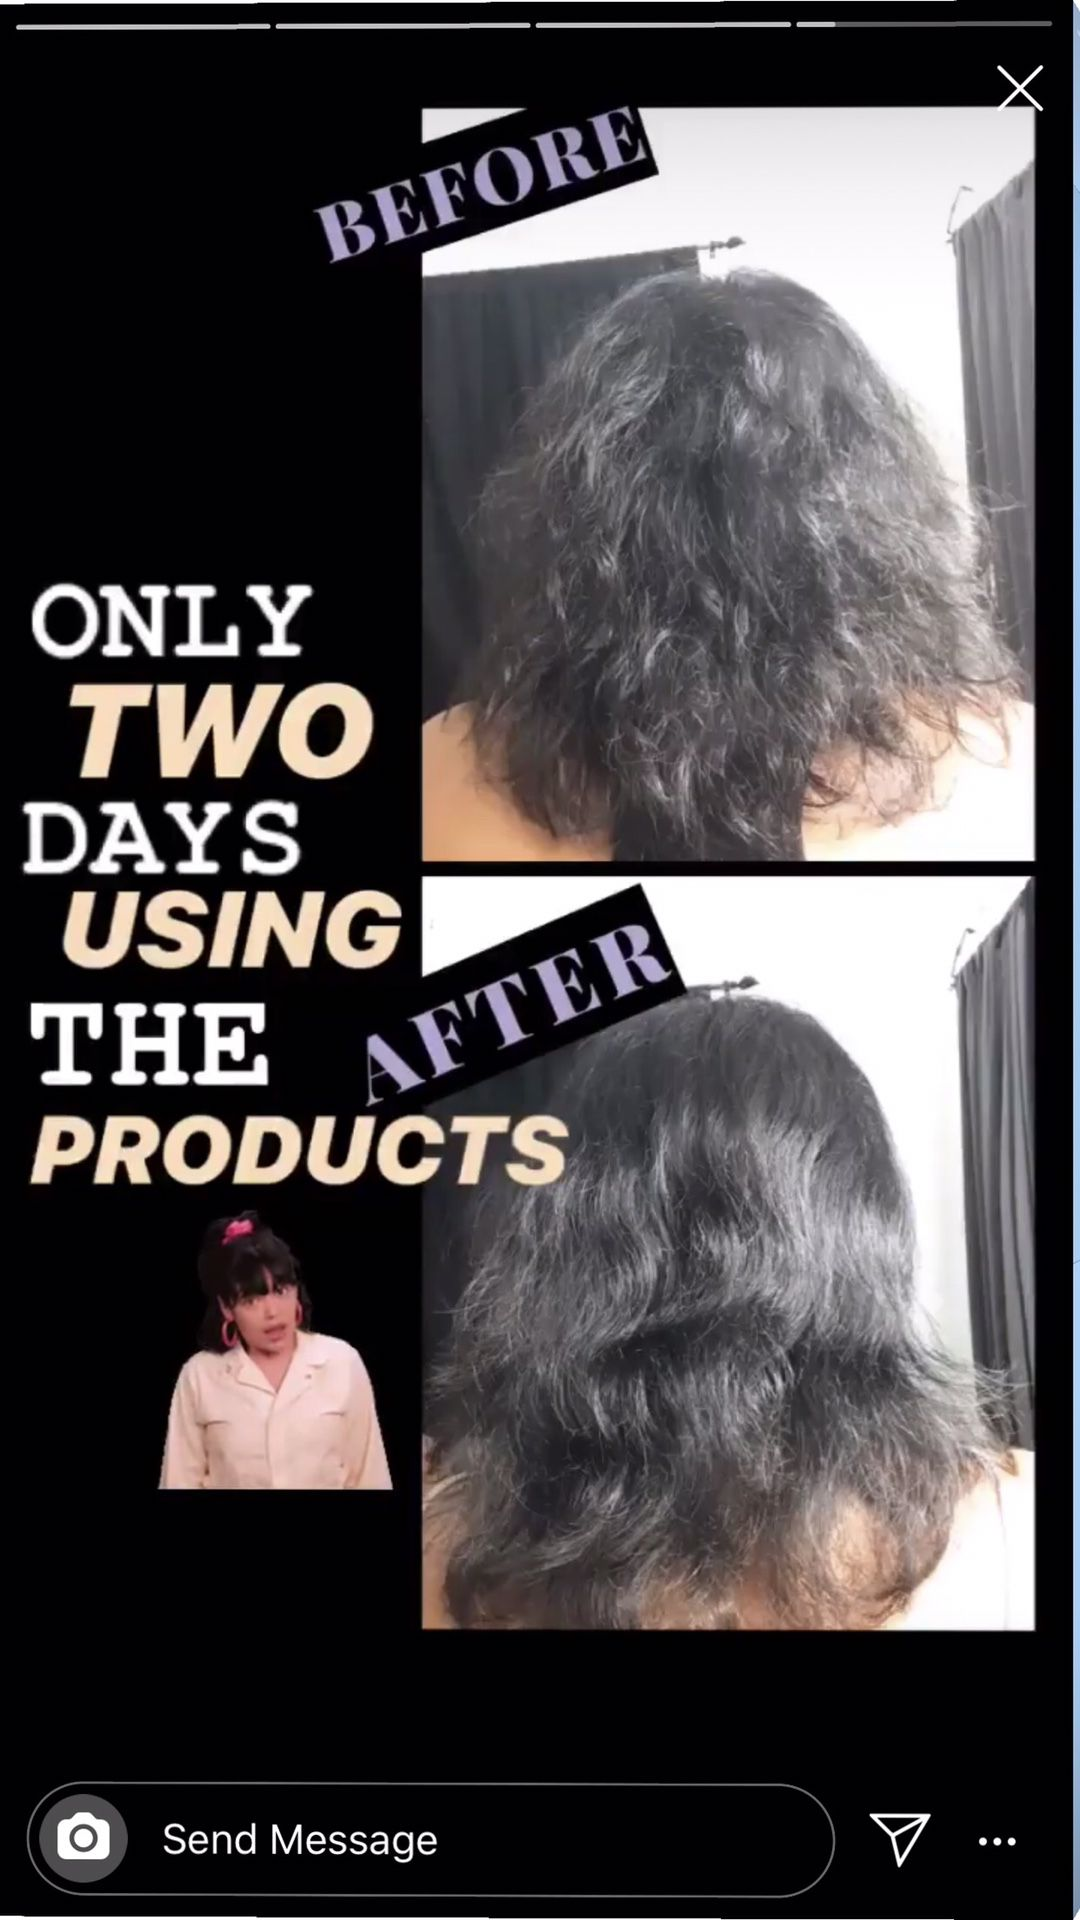 100% VEGAN PLANT BASED CRUELTY FREE HAIR PRODUCTS